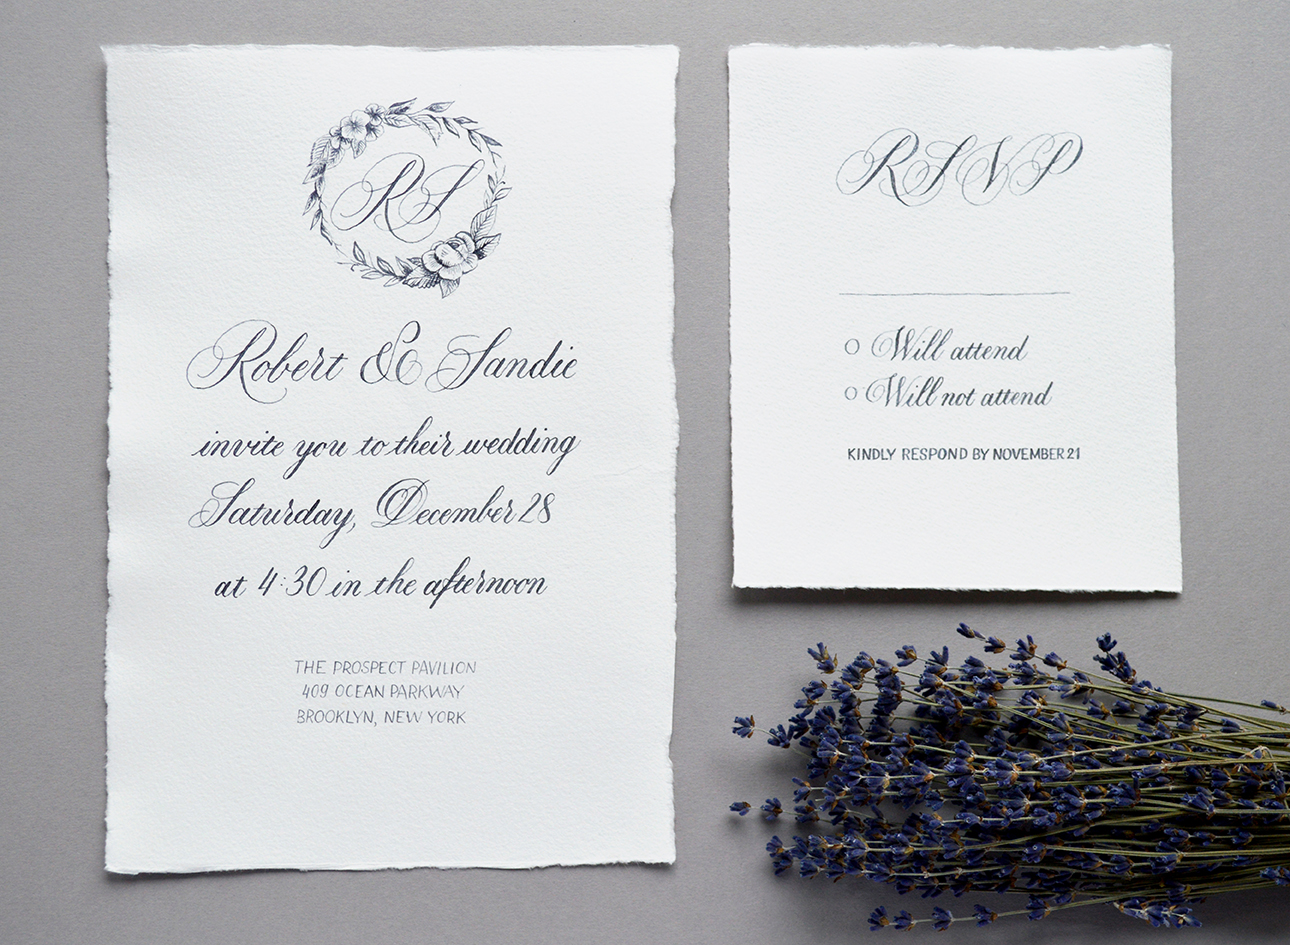 Wedding Collection: Paris in the snow by Type and Graphics Lab   typeandgraphicslab.com